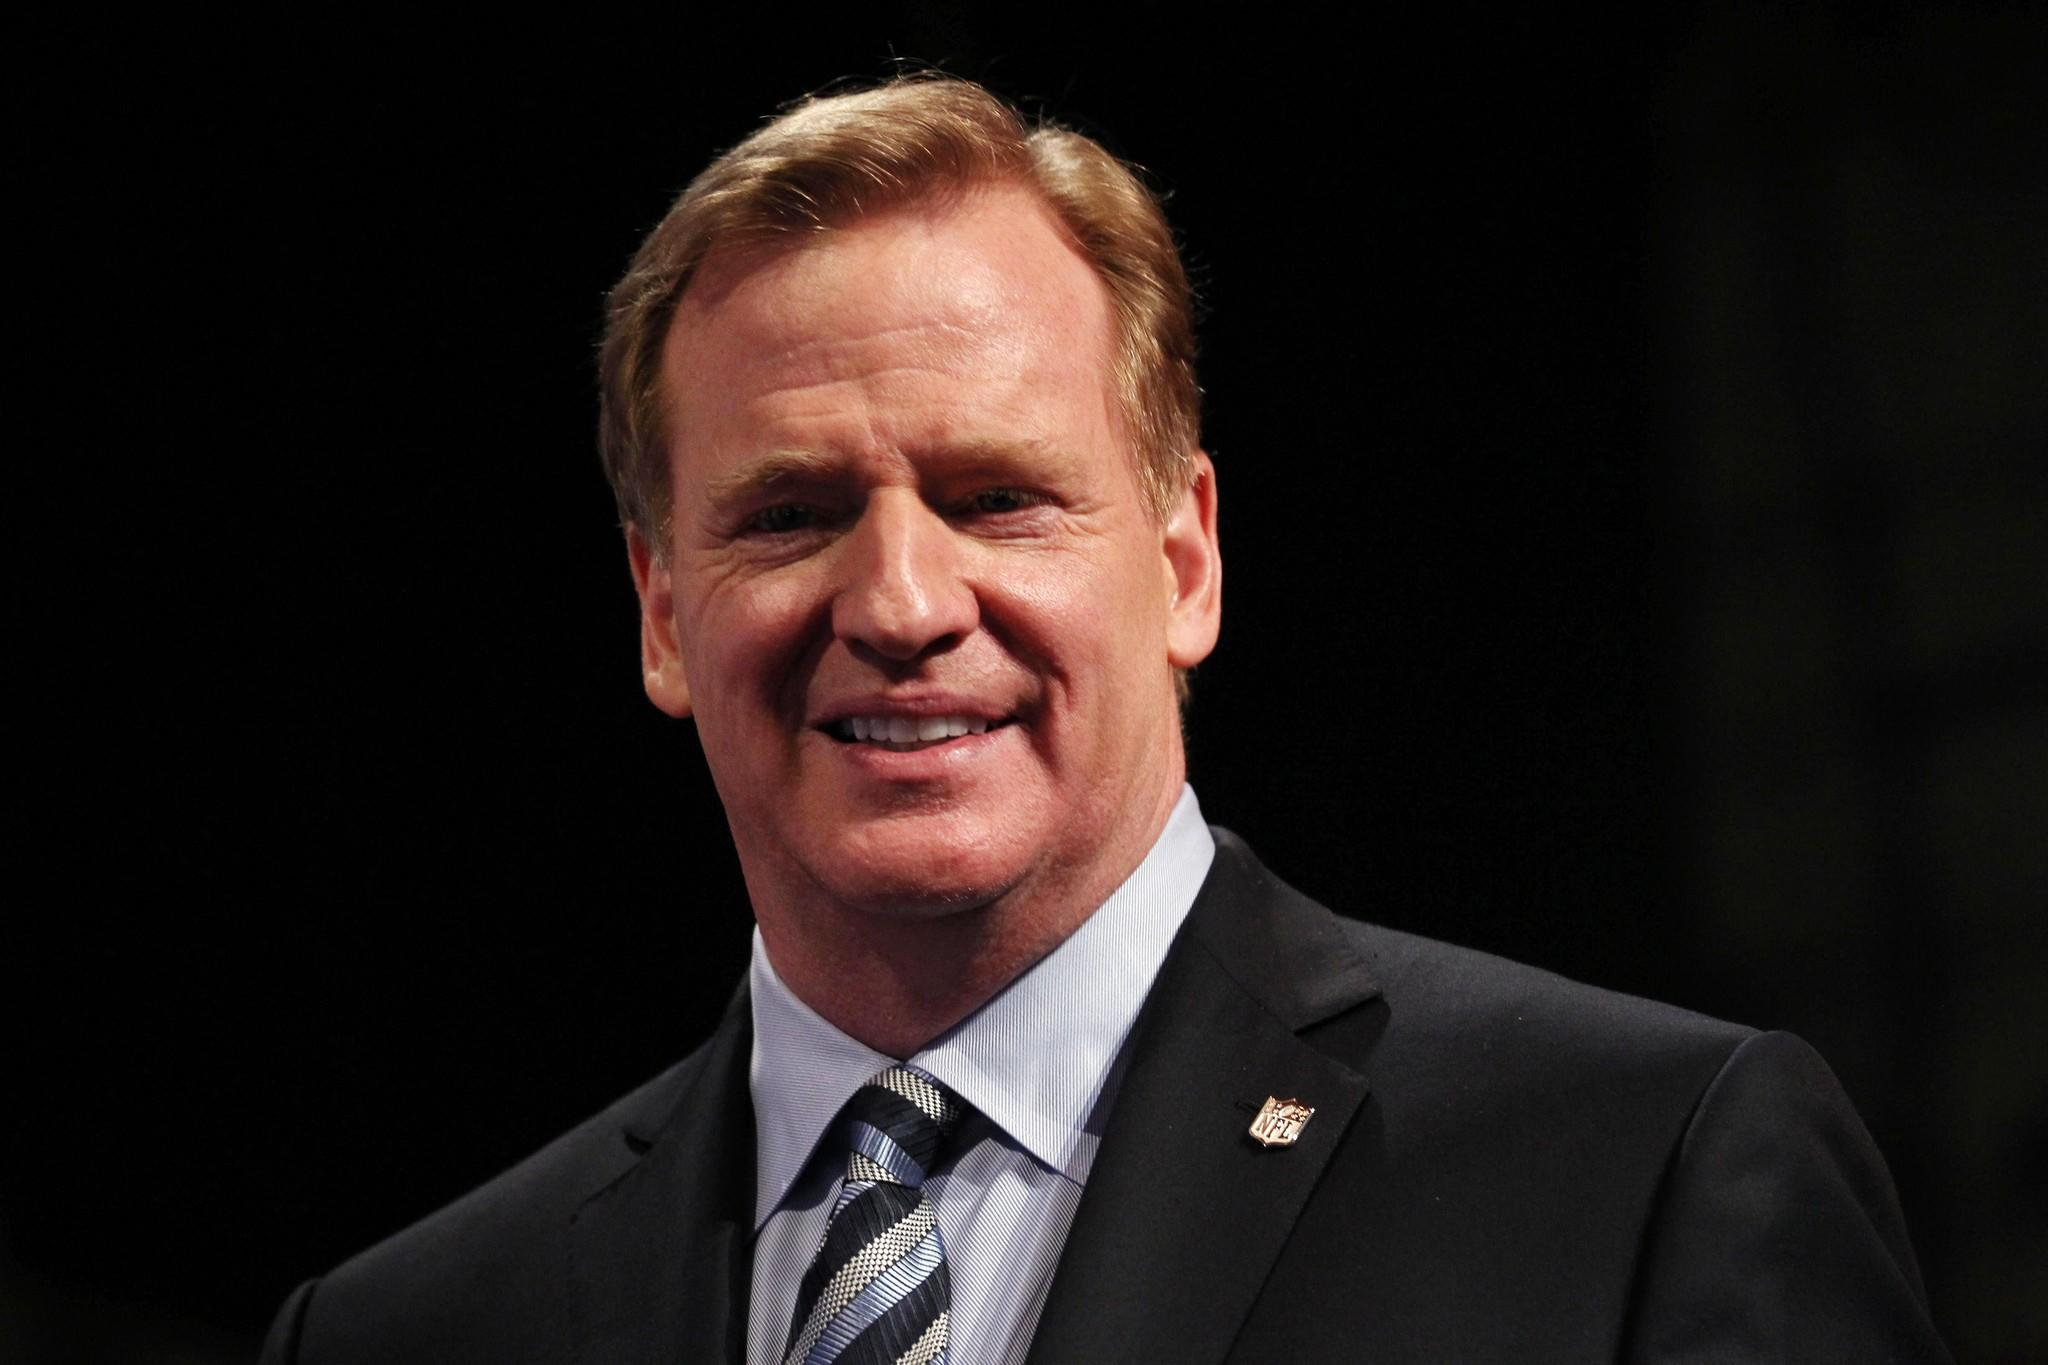 NFL Commissioner Roger Goodell is getting tougher on domestic violence.